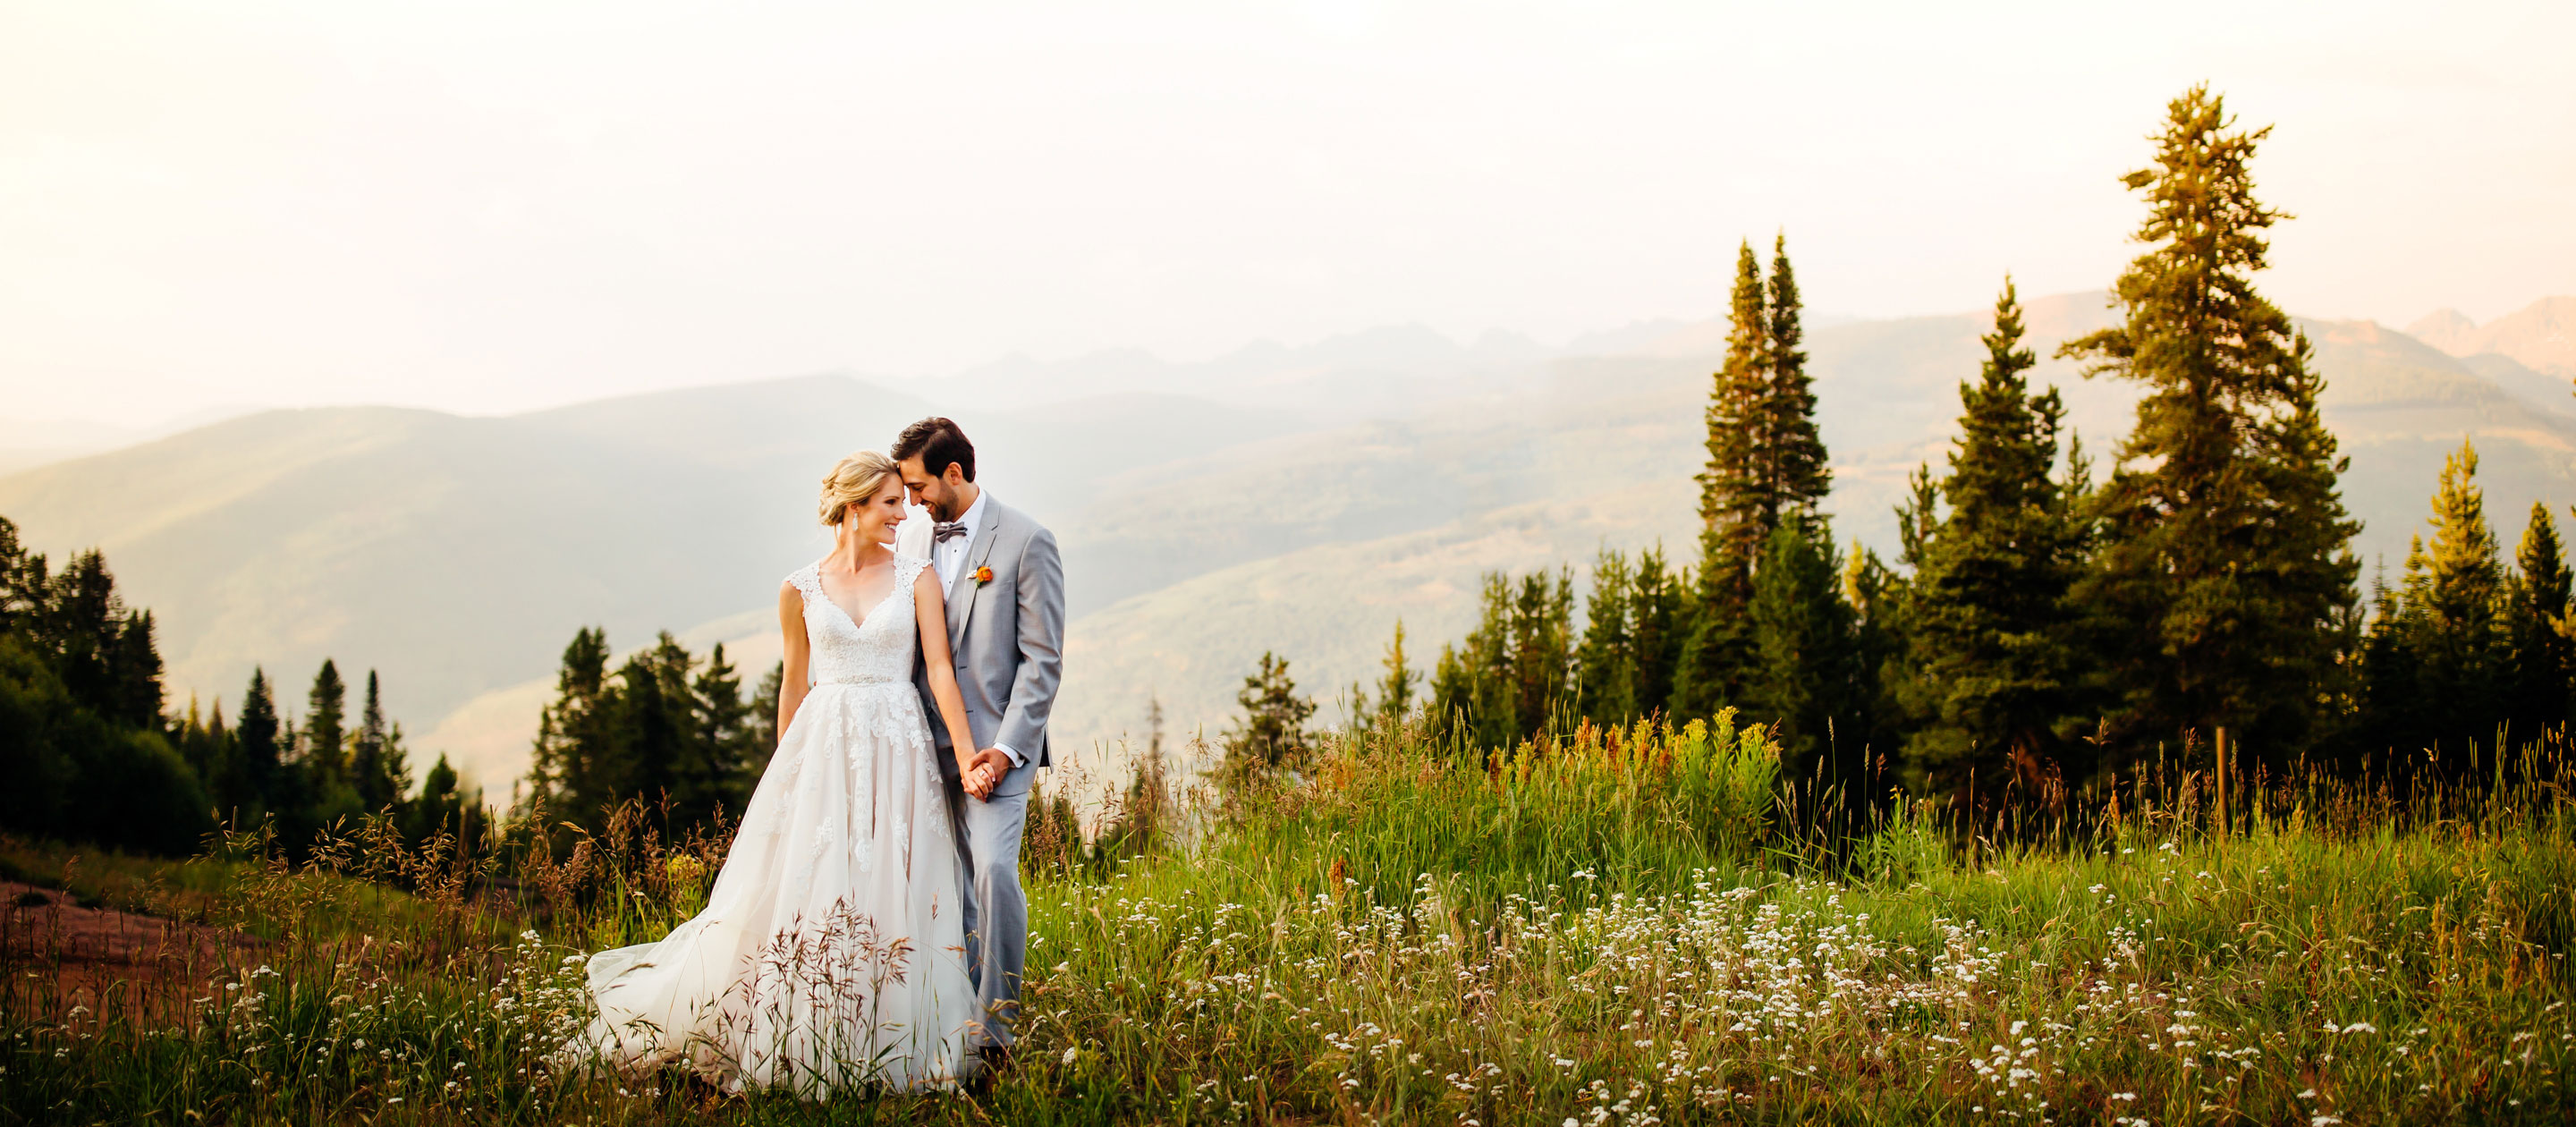 The 10th Vail Weddings